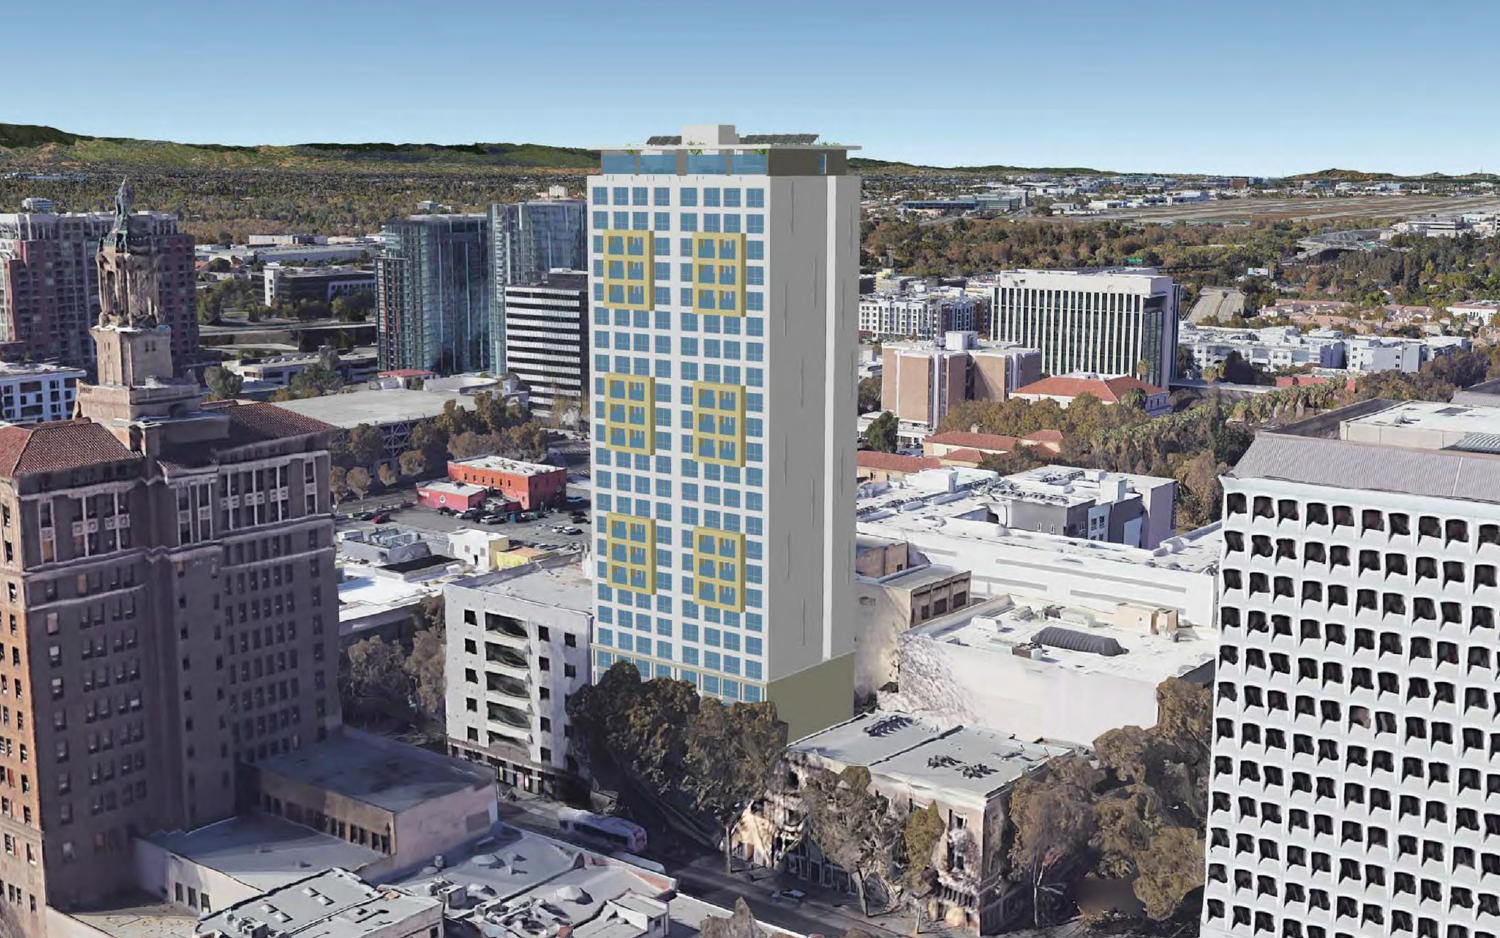 17 East Santa Clara Street aerial perspective across from the Bank of Italy, rendering by Anderson Architects